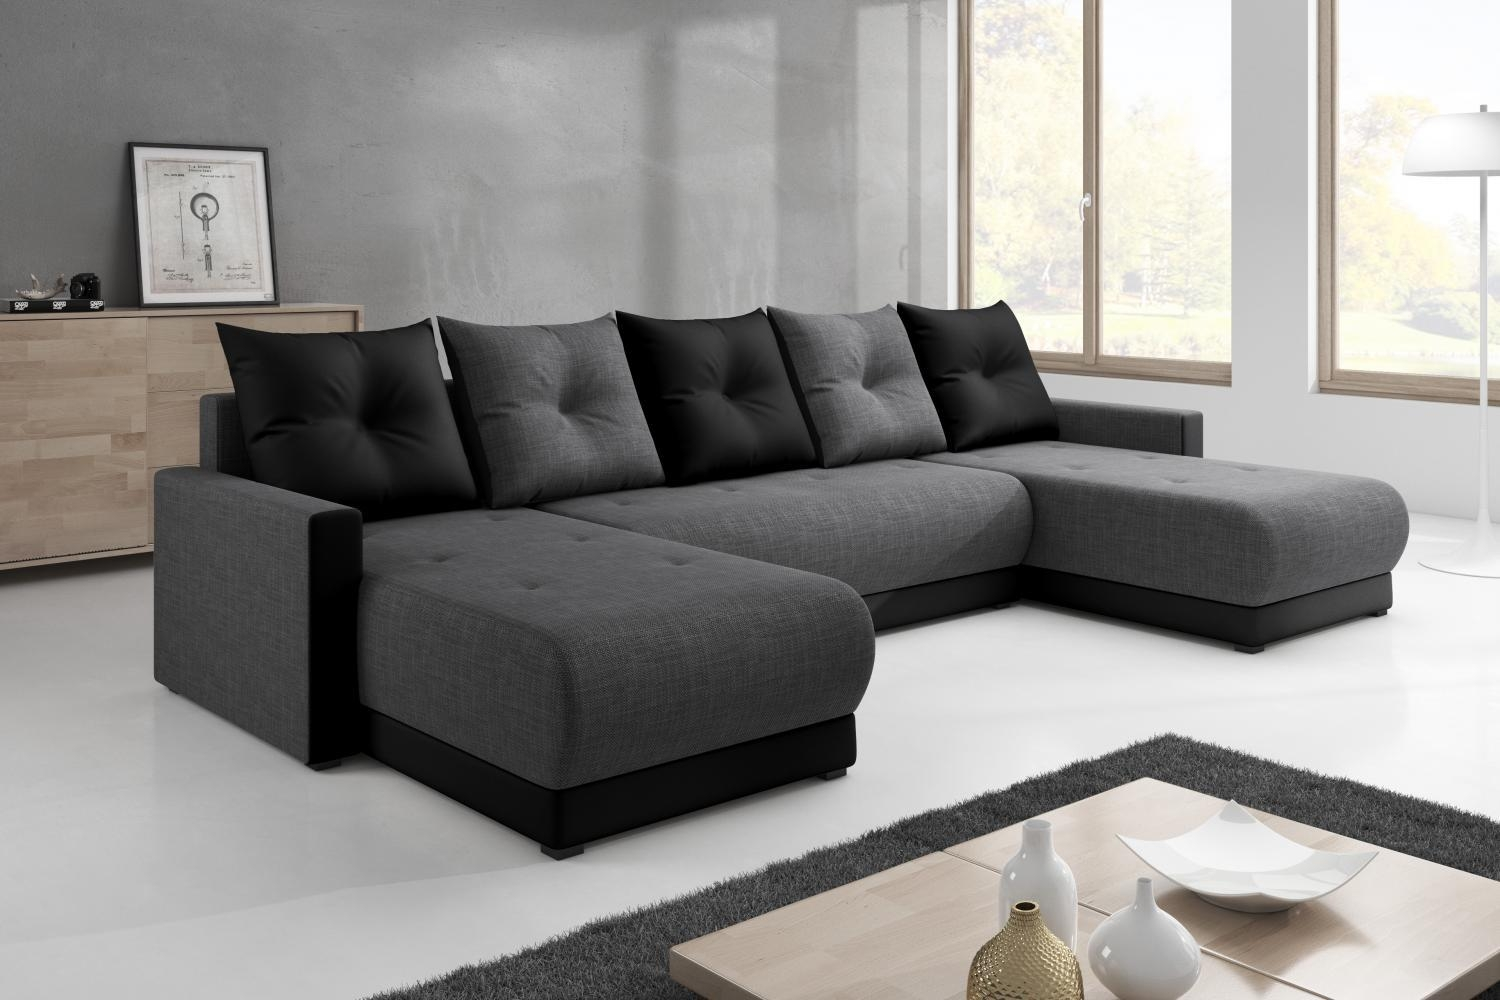 c shaped sofa designs grey with metal legs 20 inspirations ideas